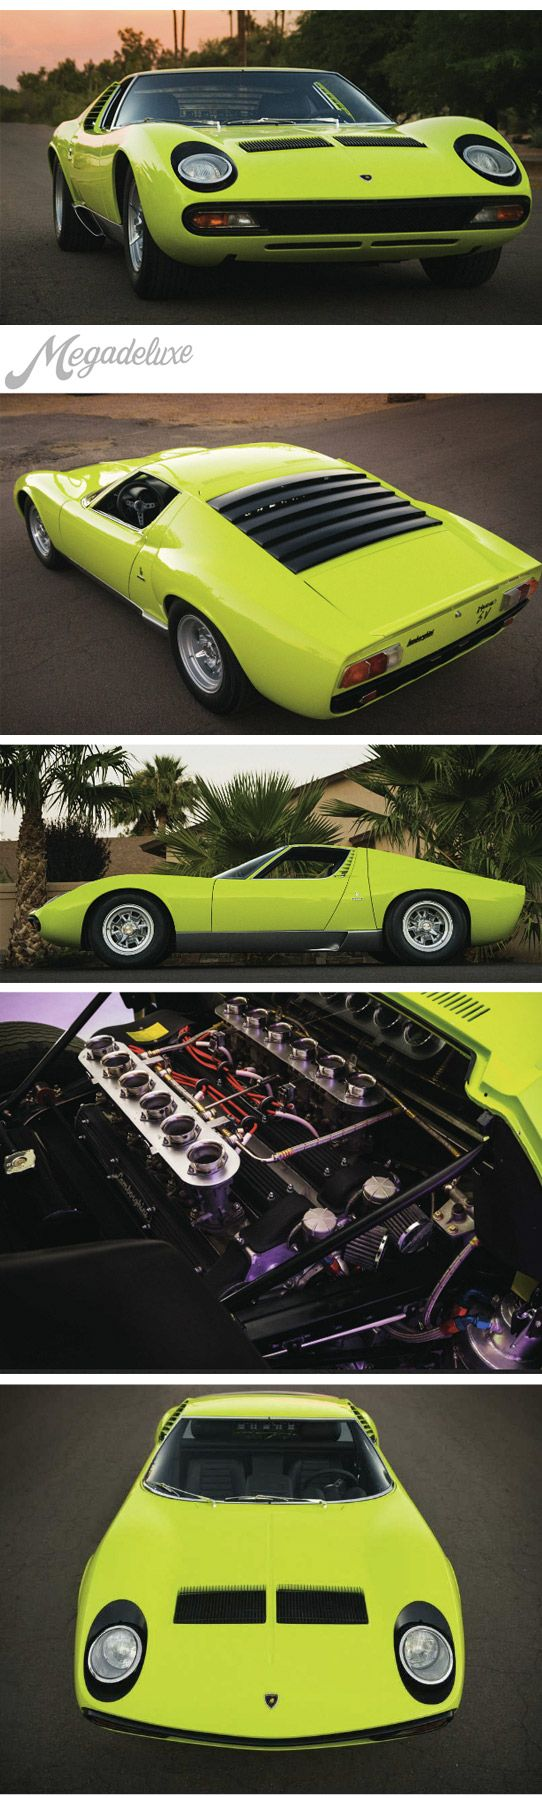 1967 LAMBORGHINI MIURA P400 SV CONVERSION ════════════════════════════ http://www.alittlemarket.com/boutique/gaby_feerie-132444.html ☞ Gαвy-Féerιe ѕυr ALιттleMαrĸeт   https://www.etsy.com/shop/frenchjewelryvintage?ref=l2-shopheader-name ☞ FrenchJewelryVintage on Etsy http://gabyfeeriefr.tumblr.com/archive ☞ Bijoux / Jewelry sur Tumblr